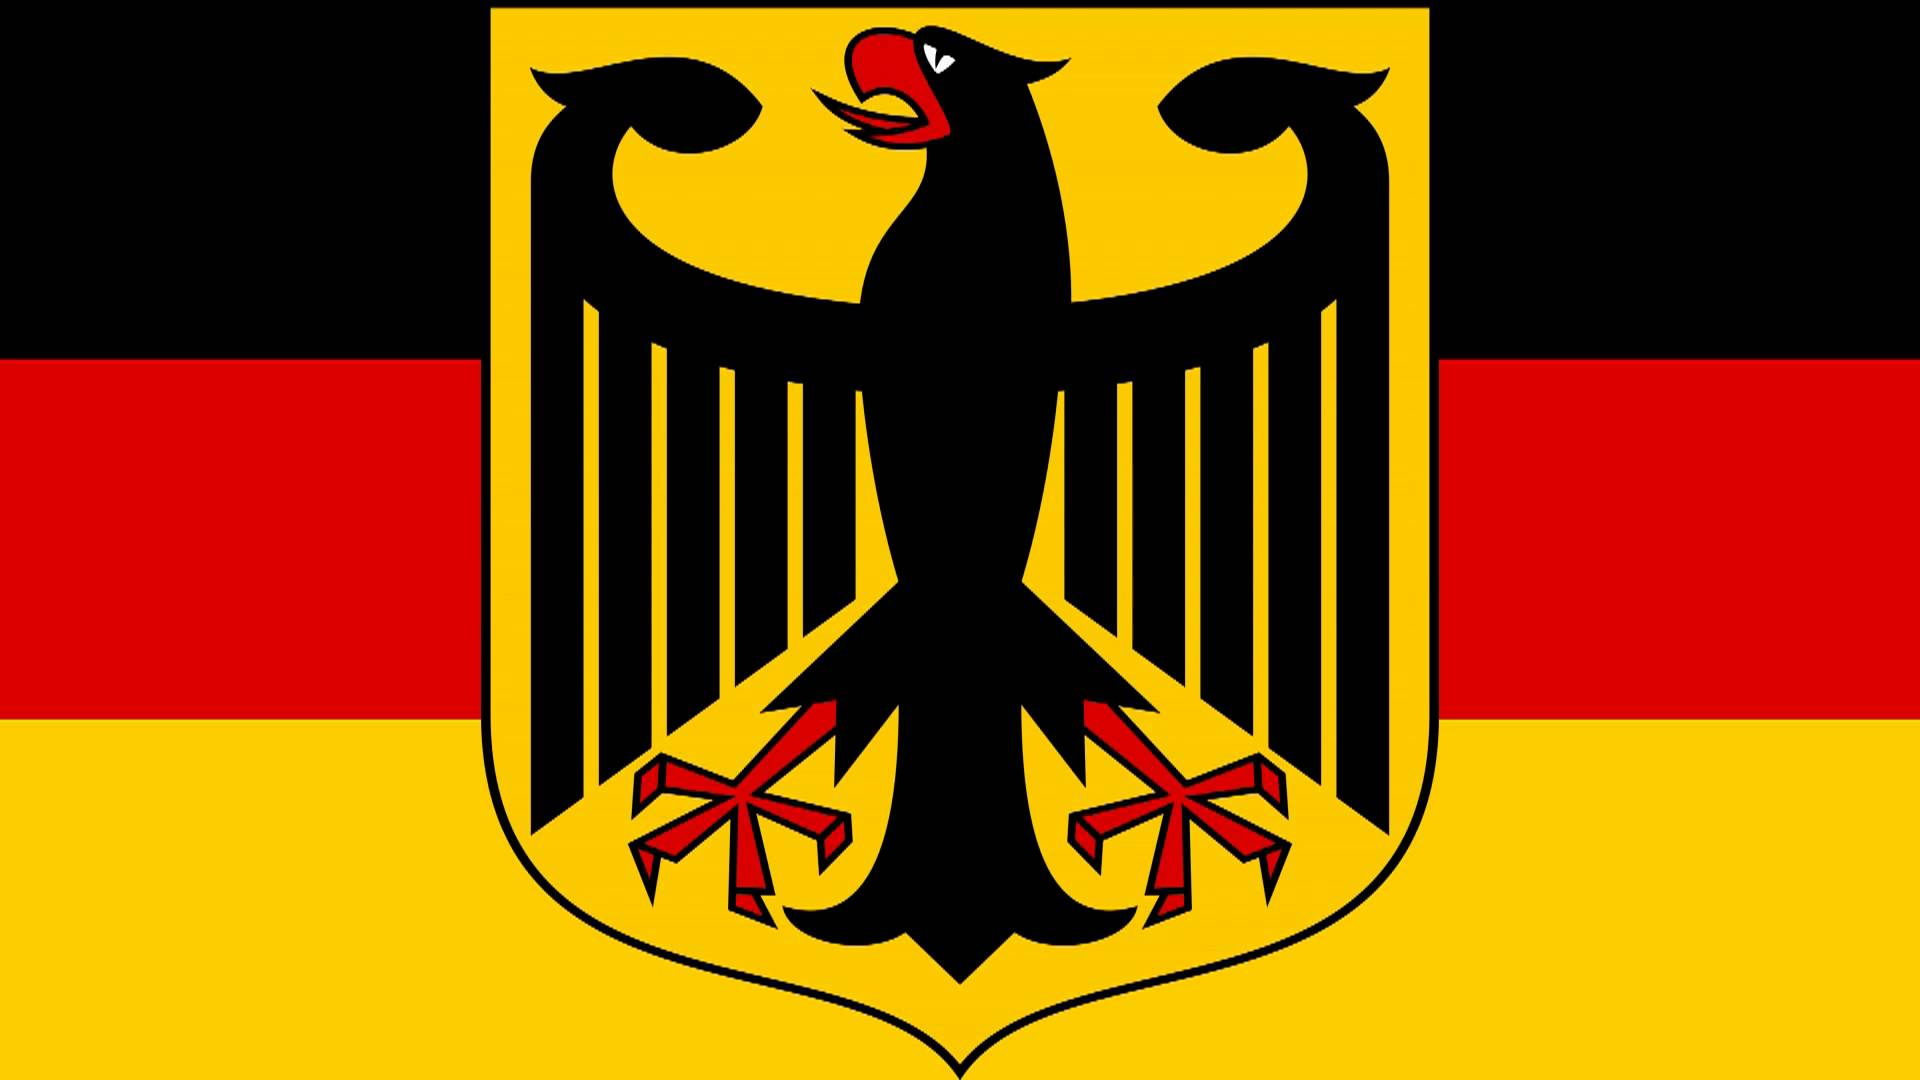 german eagle wallpaper - photo #20